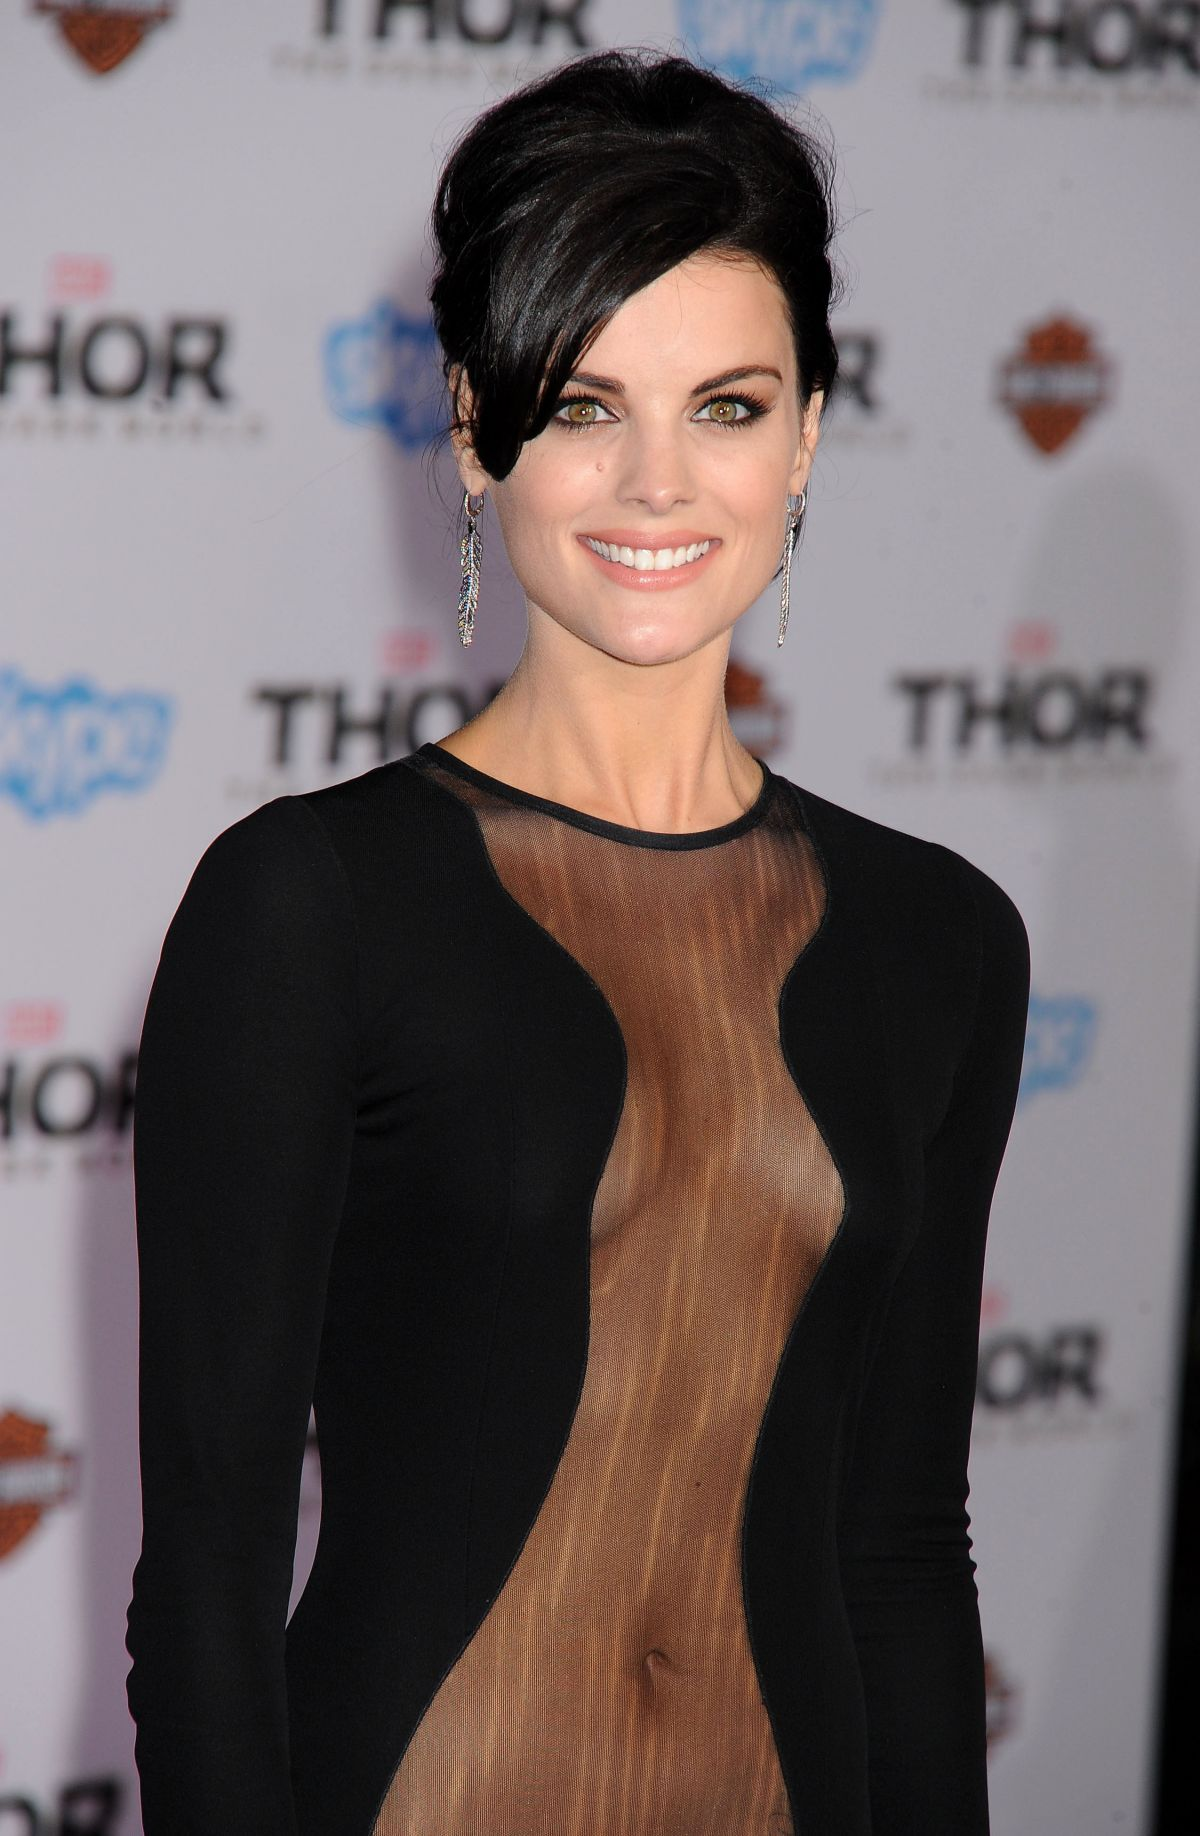 jaimie-alexander-at-thor-the-dark-world-premiere-in-hollywood_5.jpg - 214.87 KB